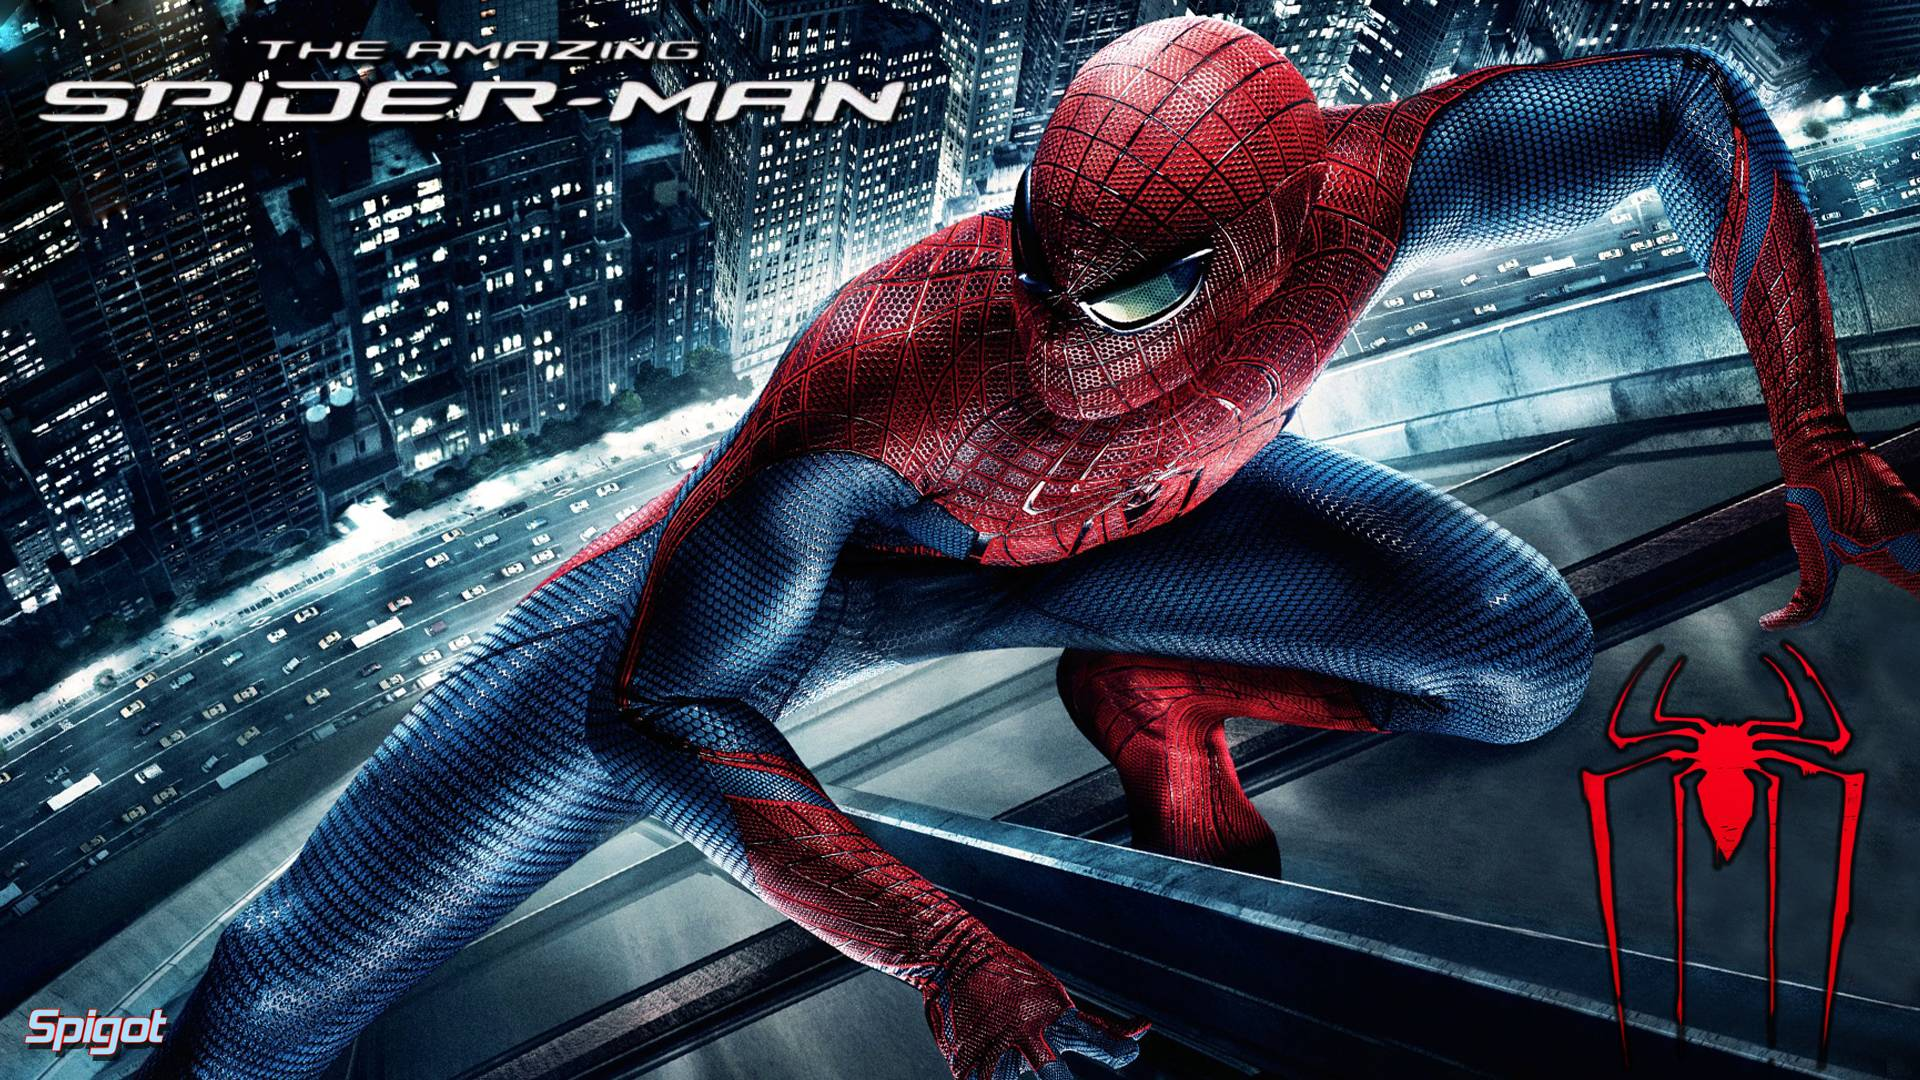 Spider Man Ipad Wallpapers Top Free Spider Man Ipad